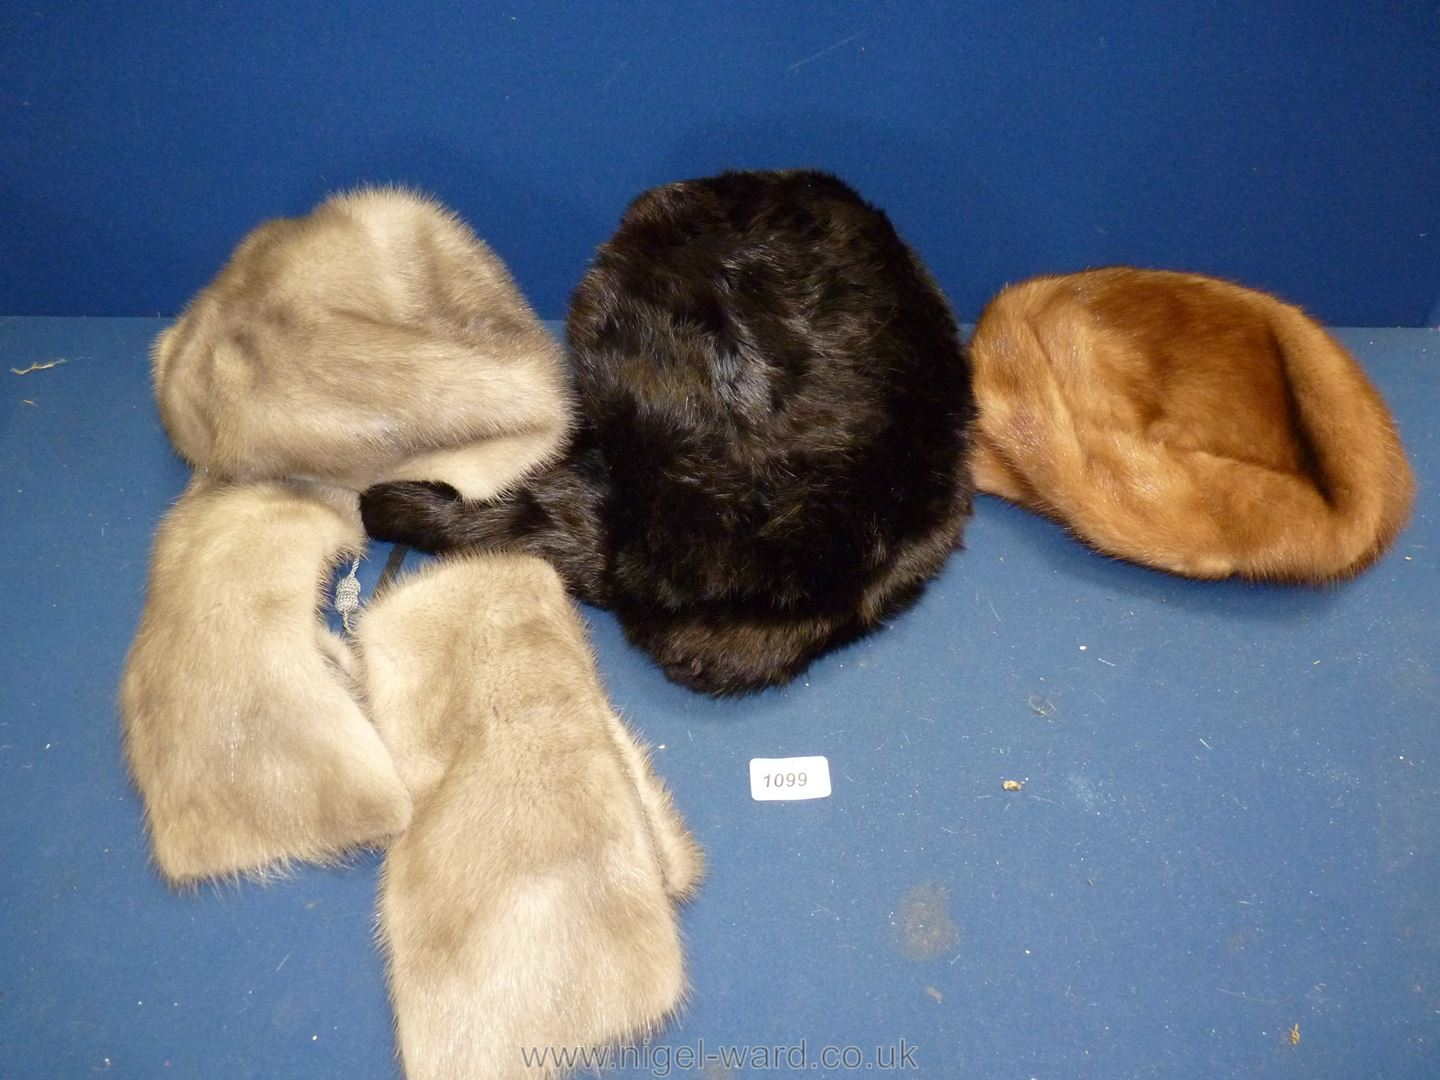 Three fur hats: one grey with scarf, one brown and black Trapper hat.